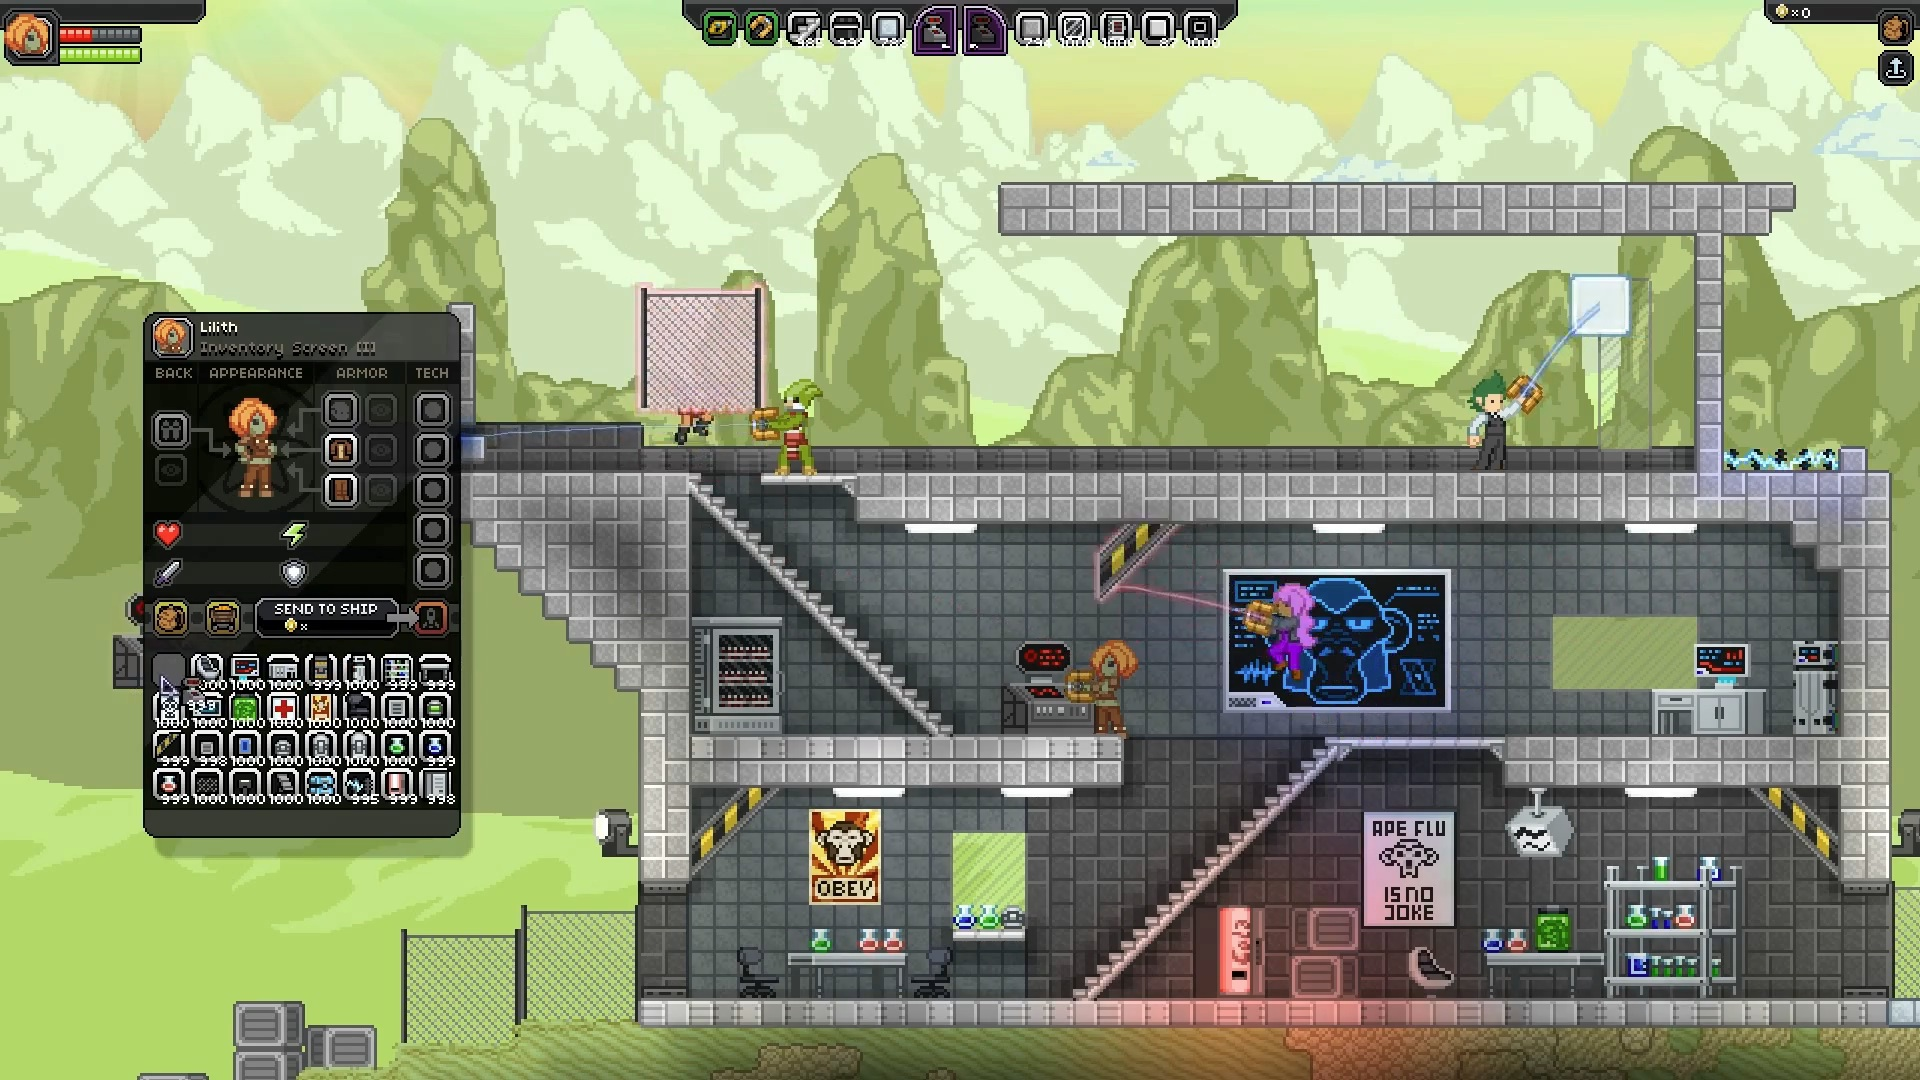 Starbound Demonstrates Building (Process)